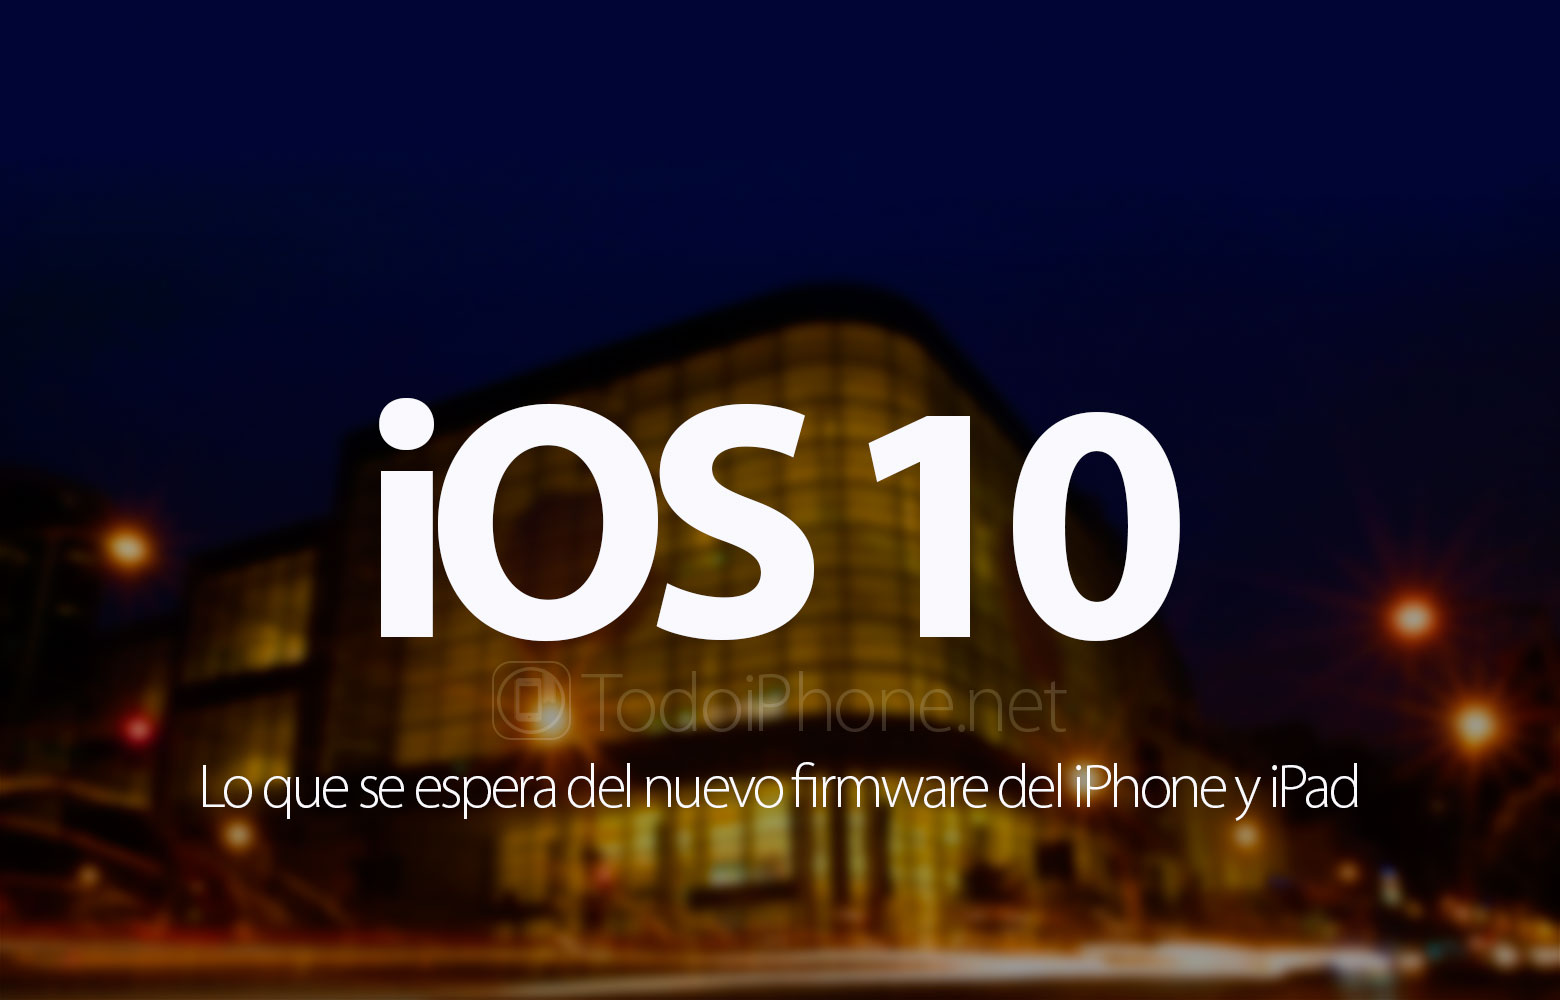 ios-10-rumores-nuevo-firmware-iphone-ipad